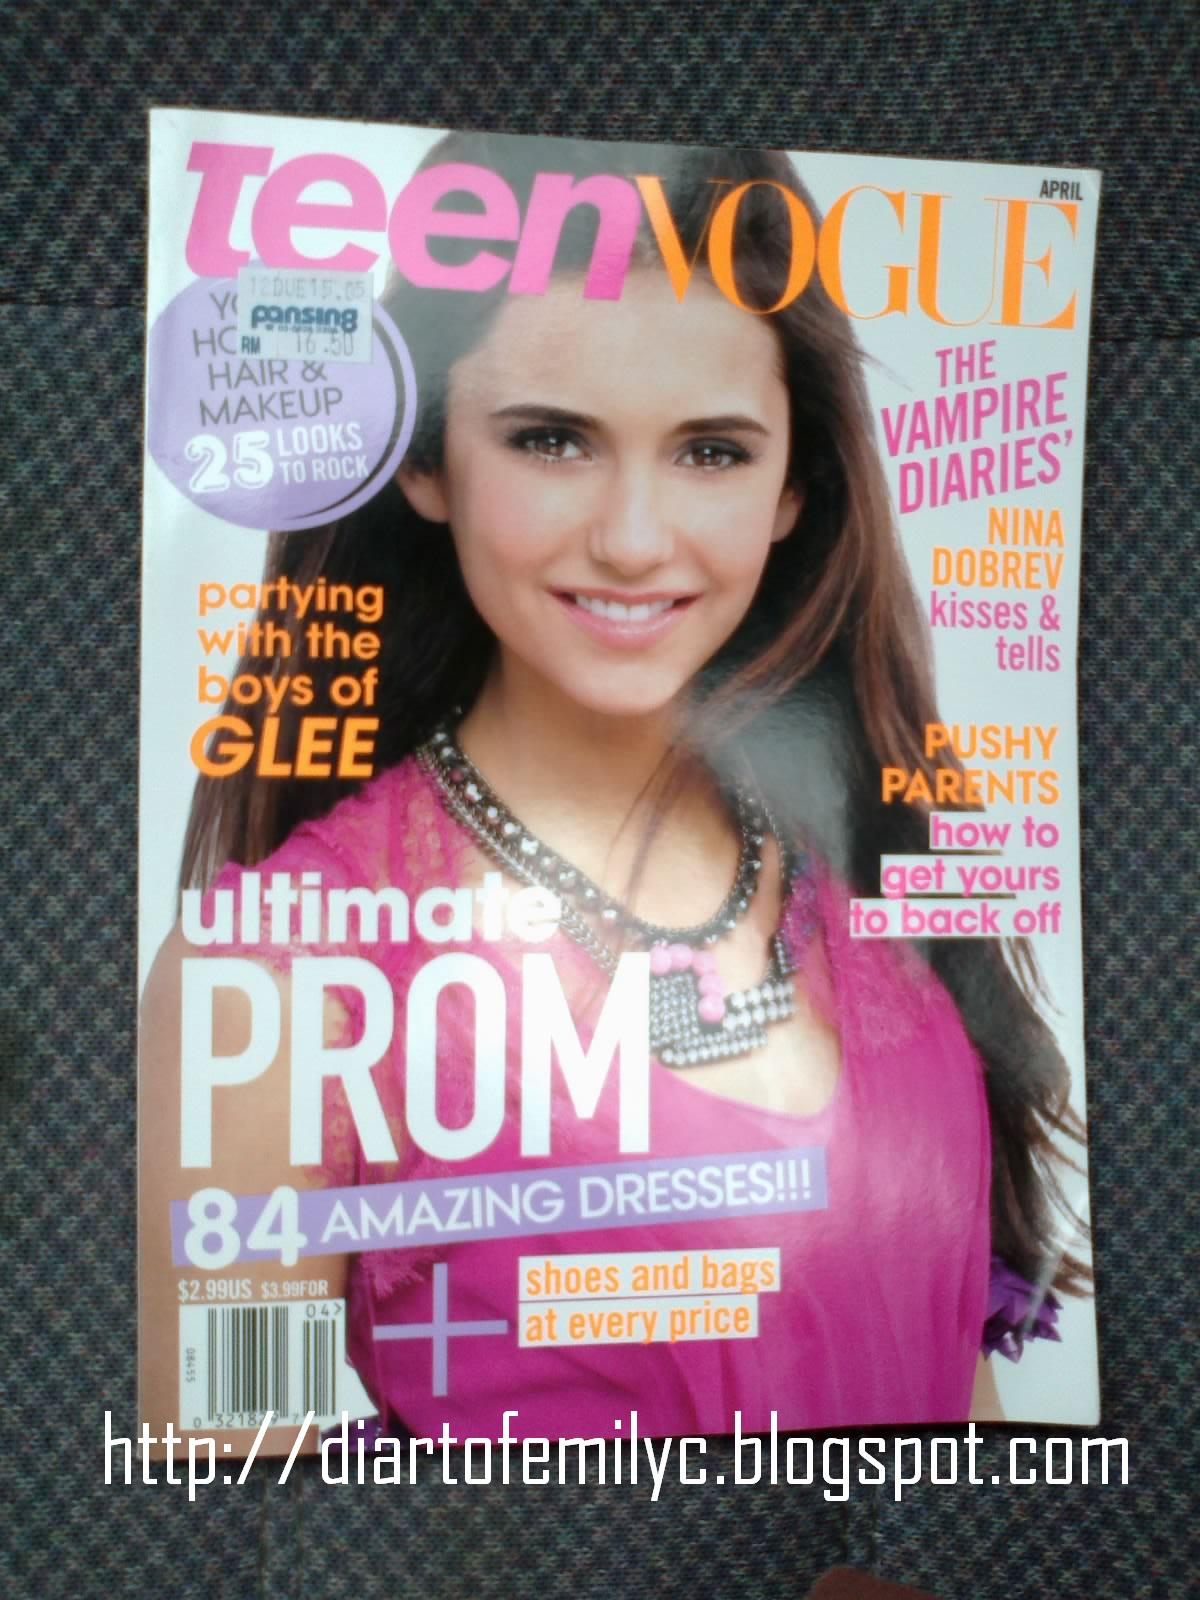 Such a hardcore fan I am! Hahaha. Ahhhh. The cover girl this issue is Nina ...